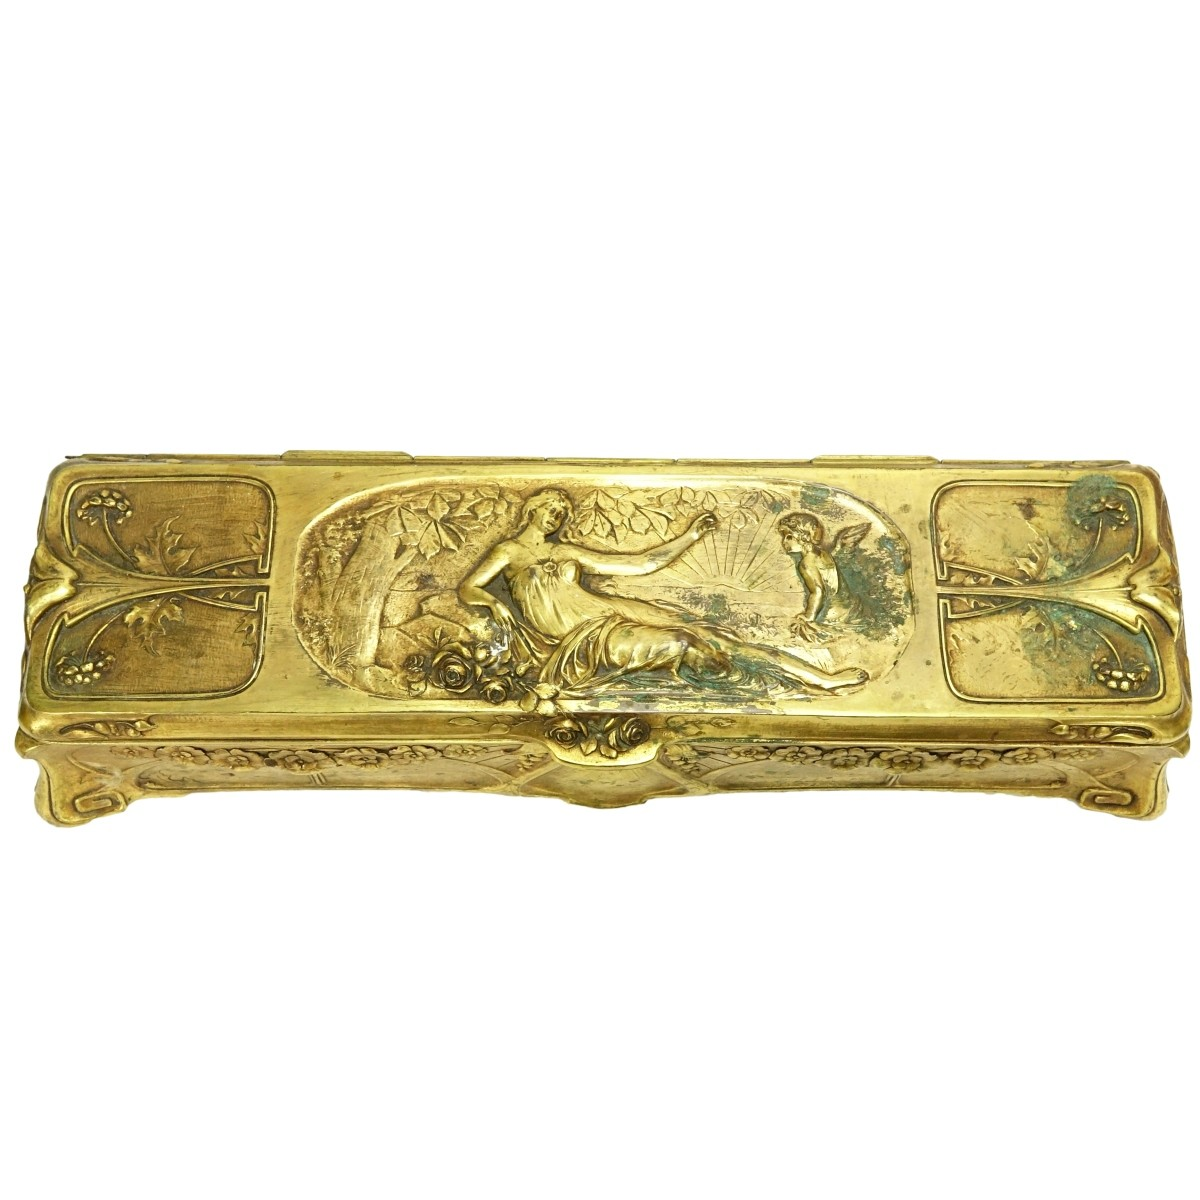 Antique French Art Nouveau Gilt Metal Hinged Box